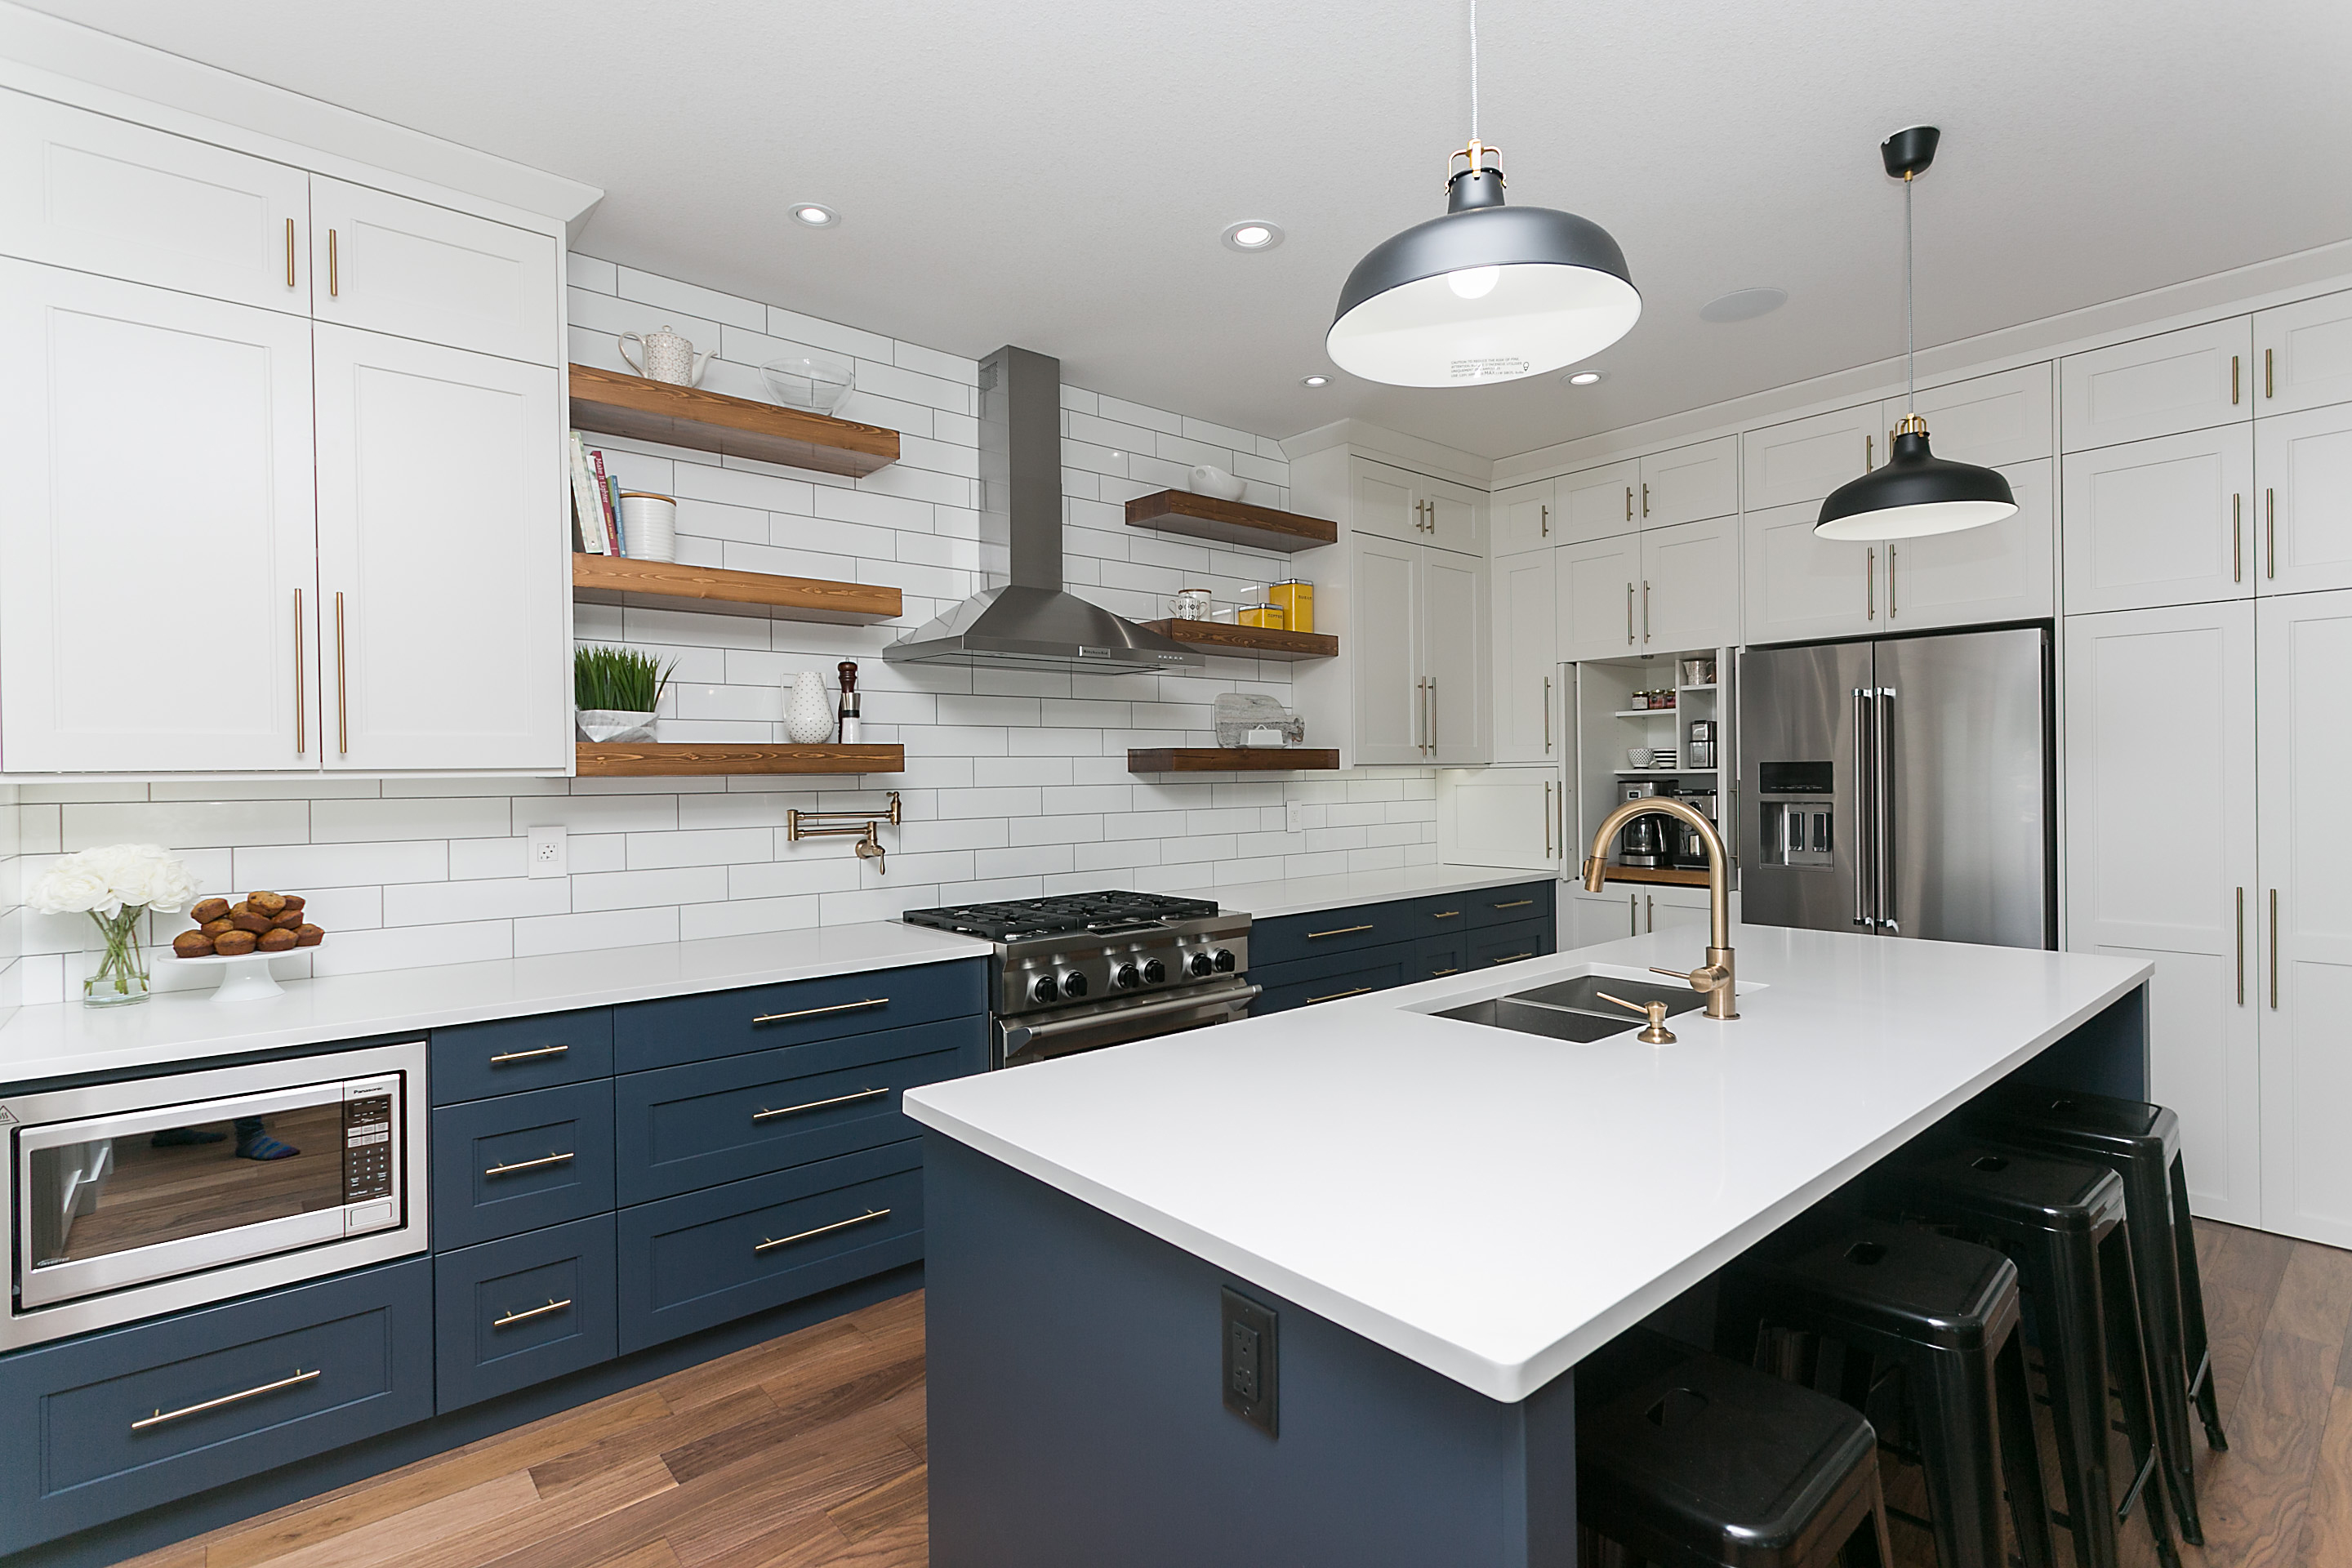 Renovation Resolutions: Financing Options to Make Your Dream Project Happen Sooner